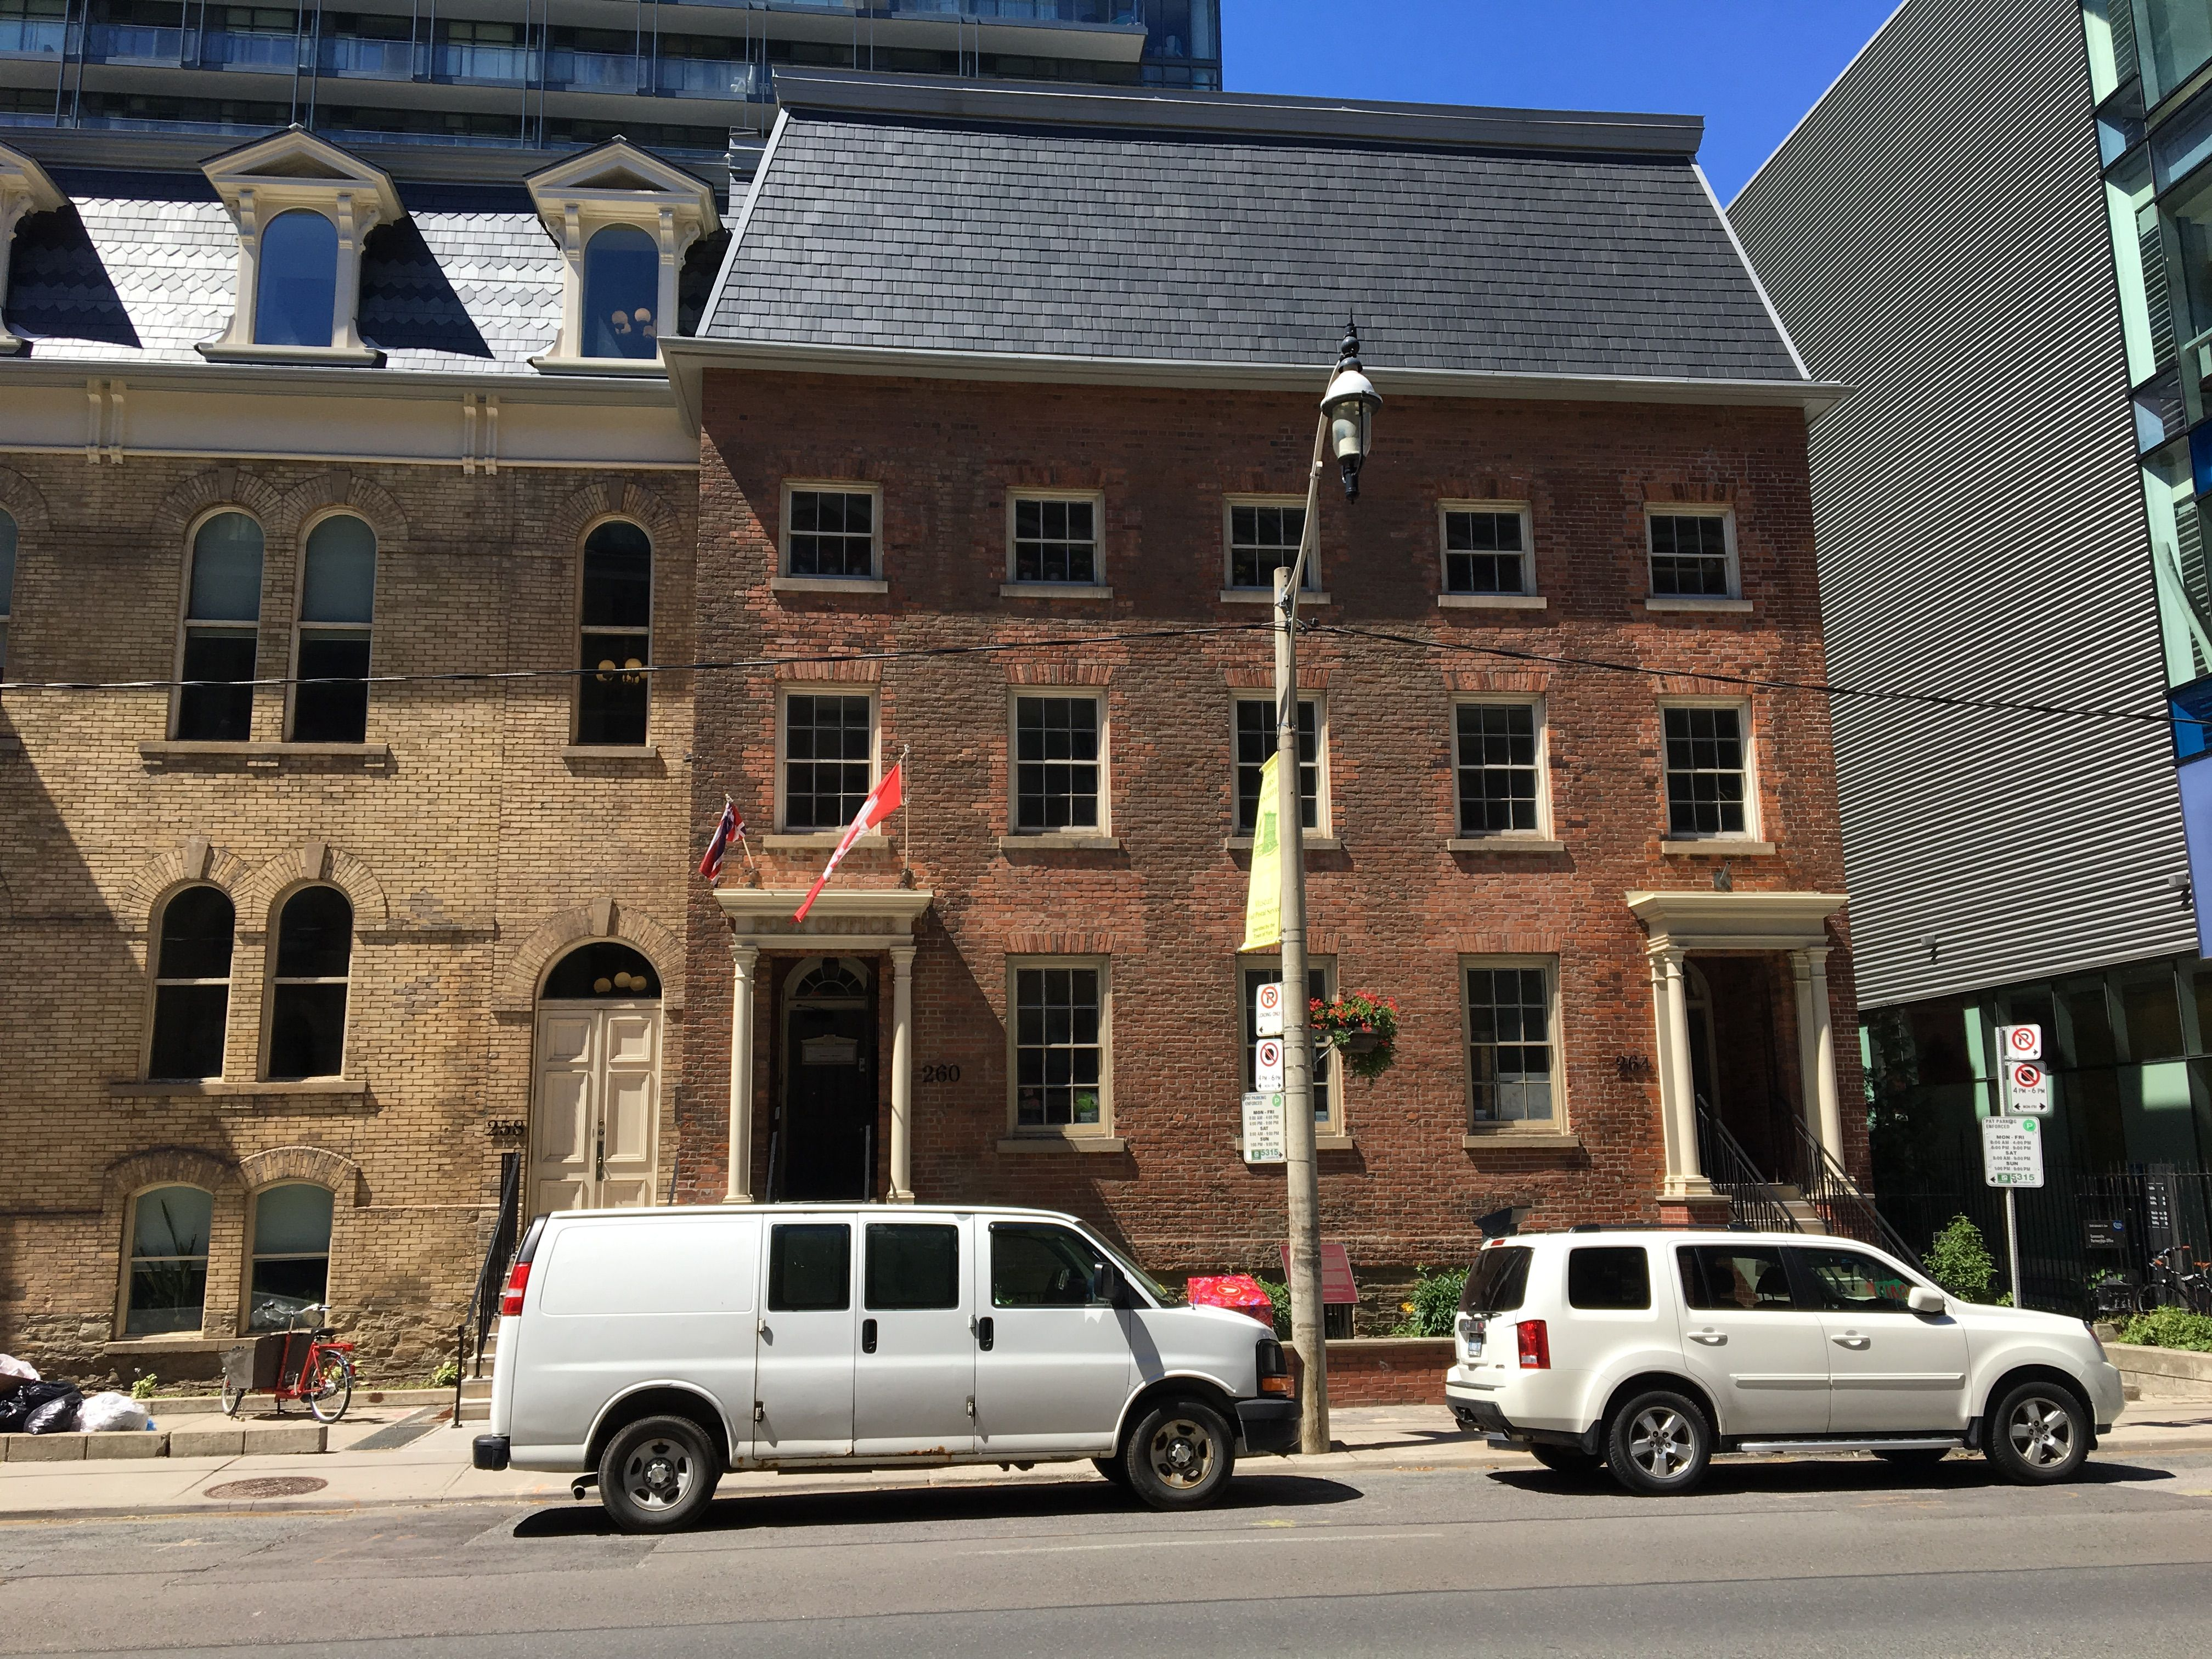 Toronto S First Post Office Located At 260 Adelaide Street East Built In 1833 1834 Is An Example Of Georgian Style Ar Slate Roof North Country Adelaide Street